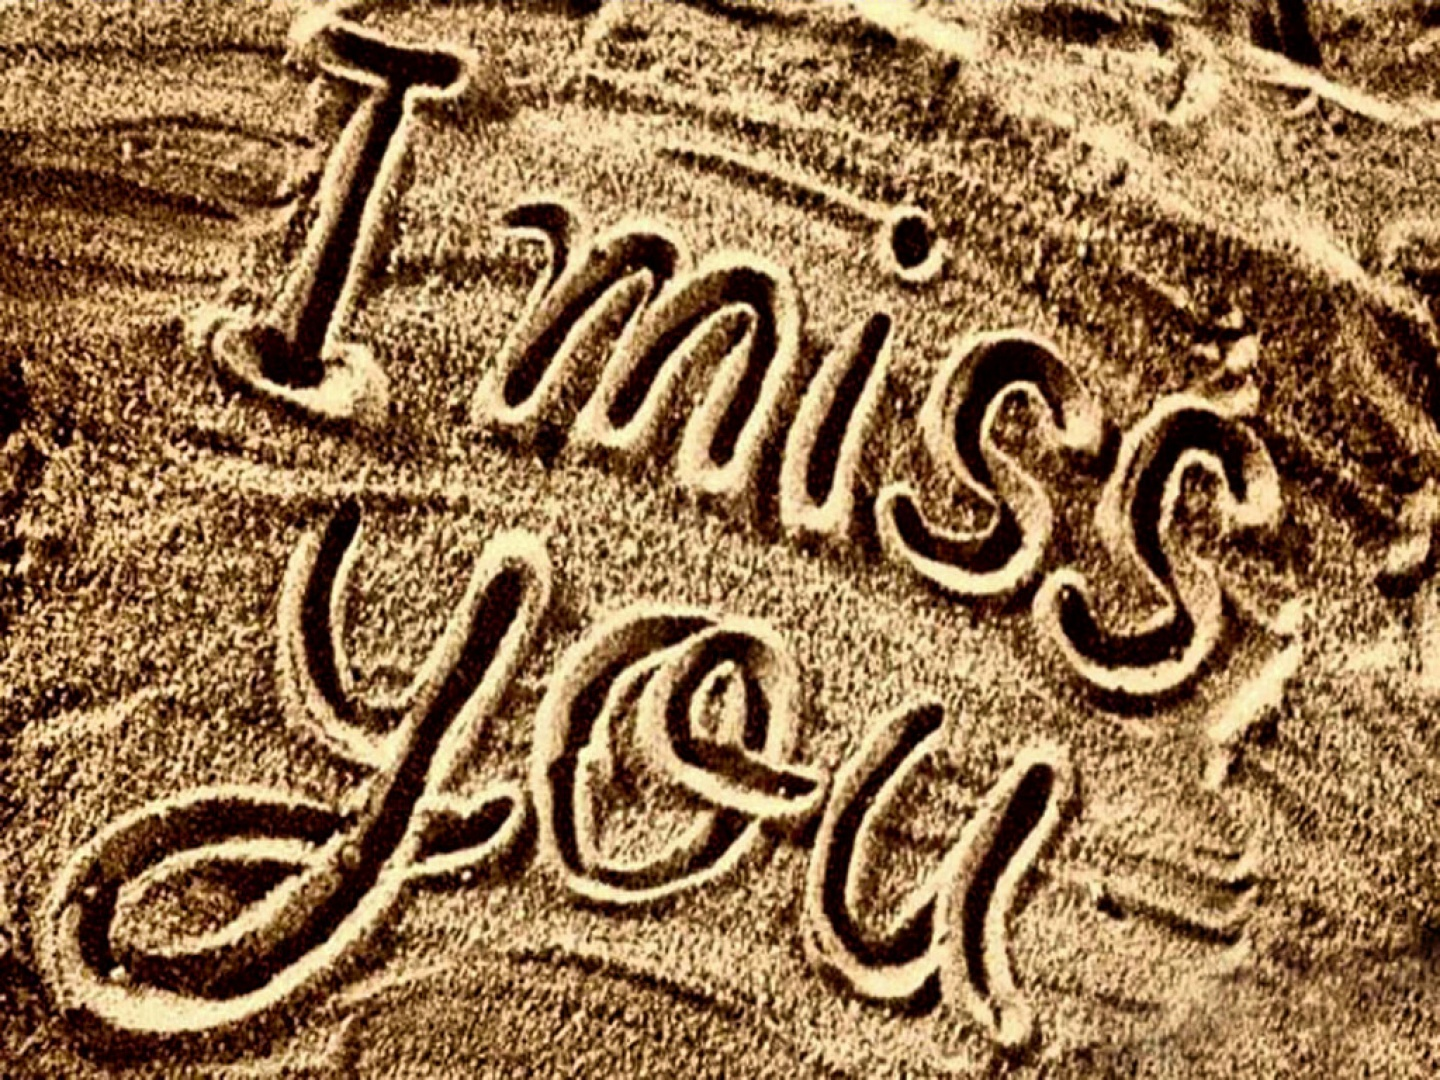 Fondos de I miss you Fondos de pantalla de I miss you   3D Fondos 1440x1080